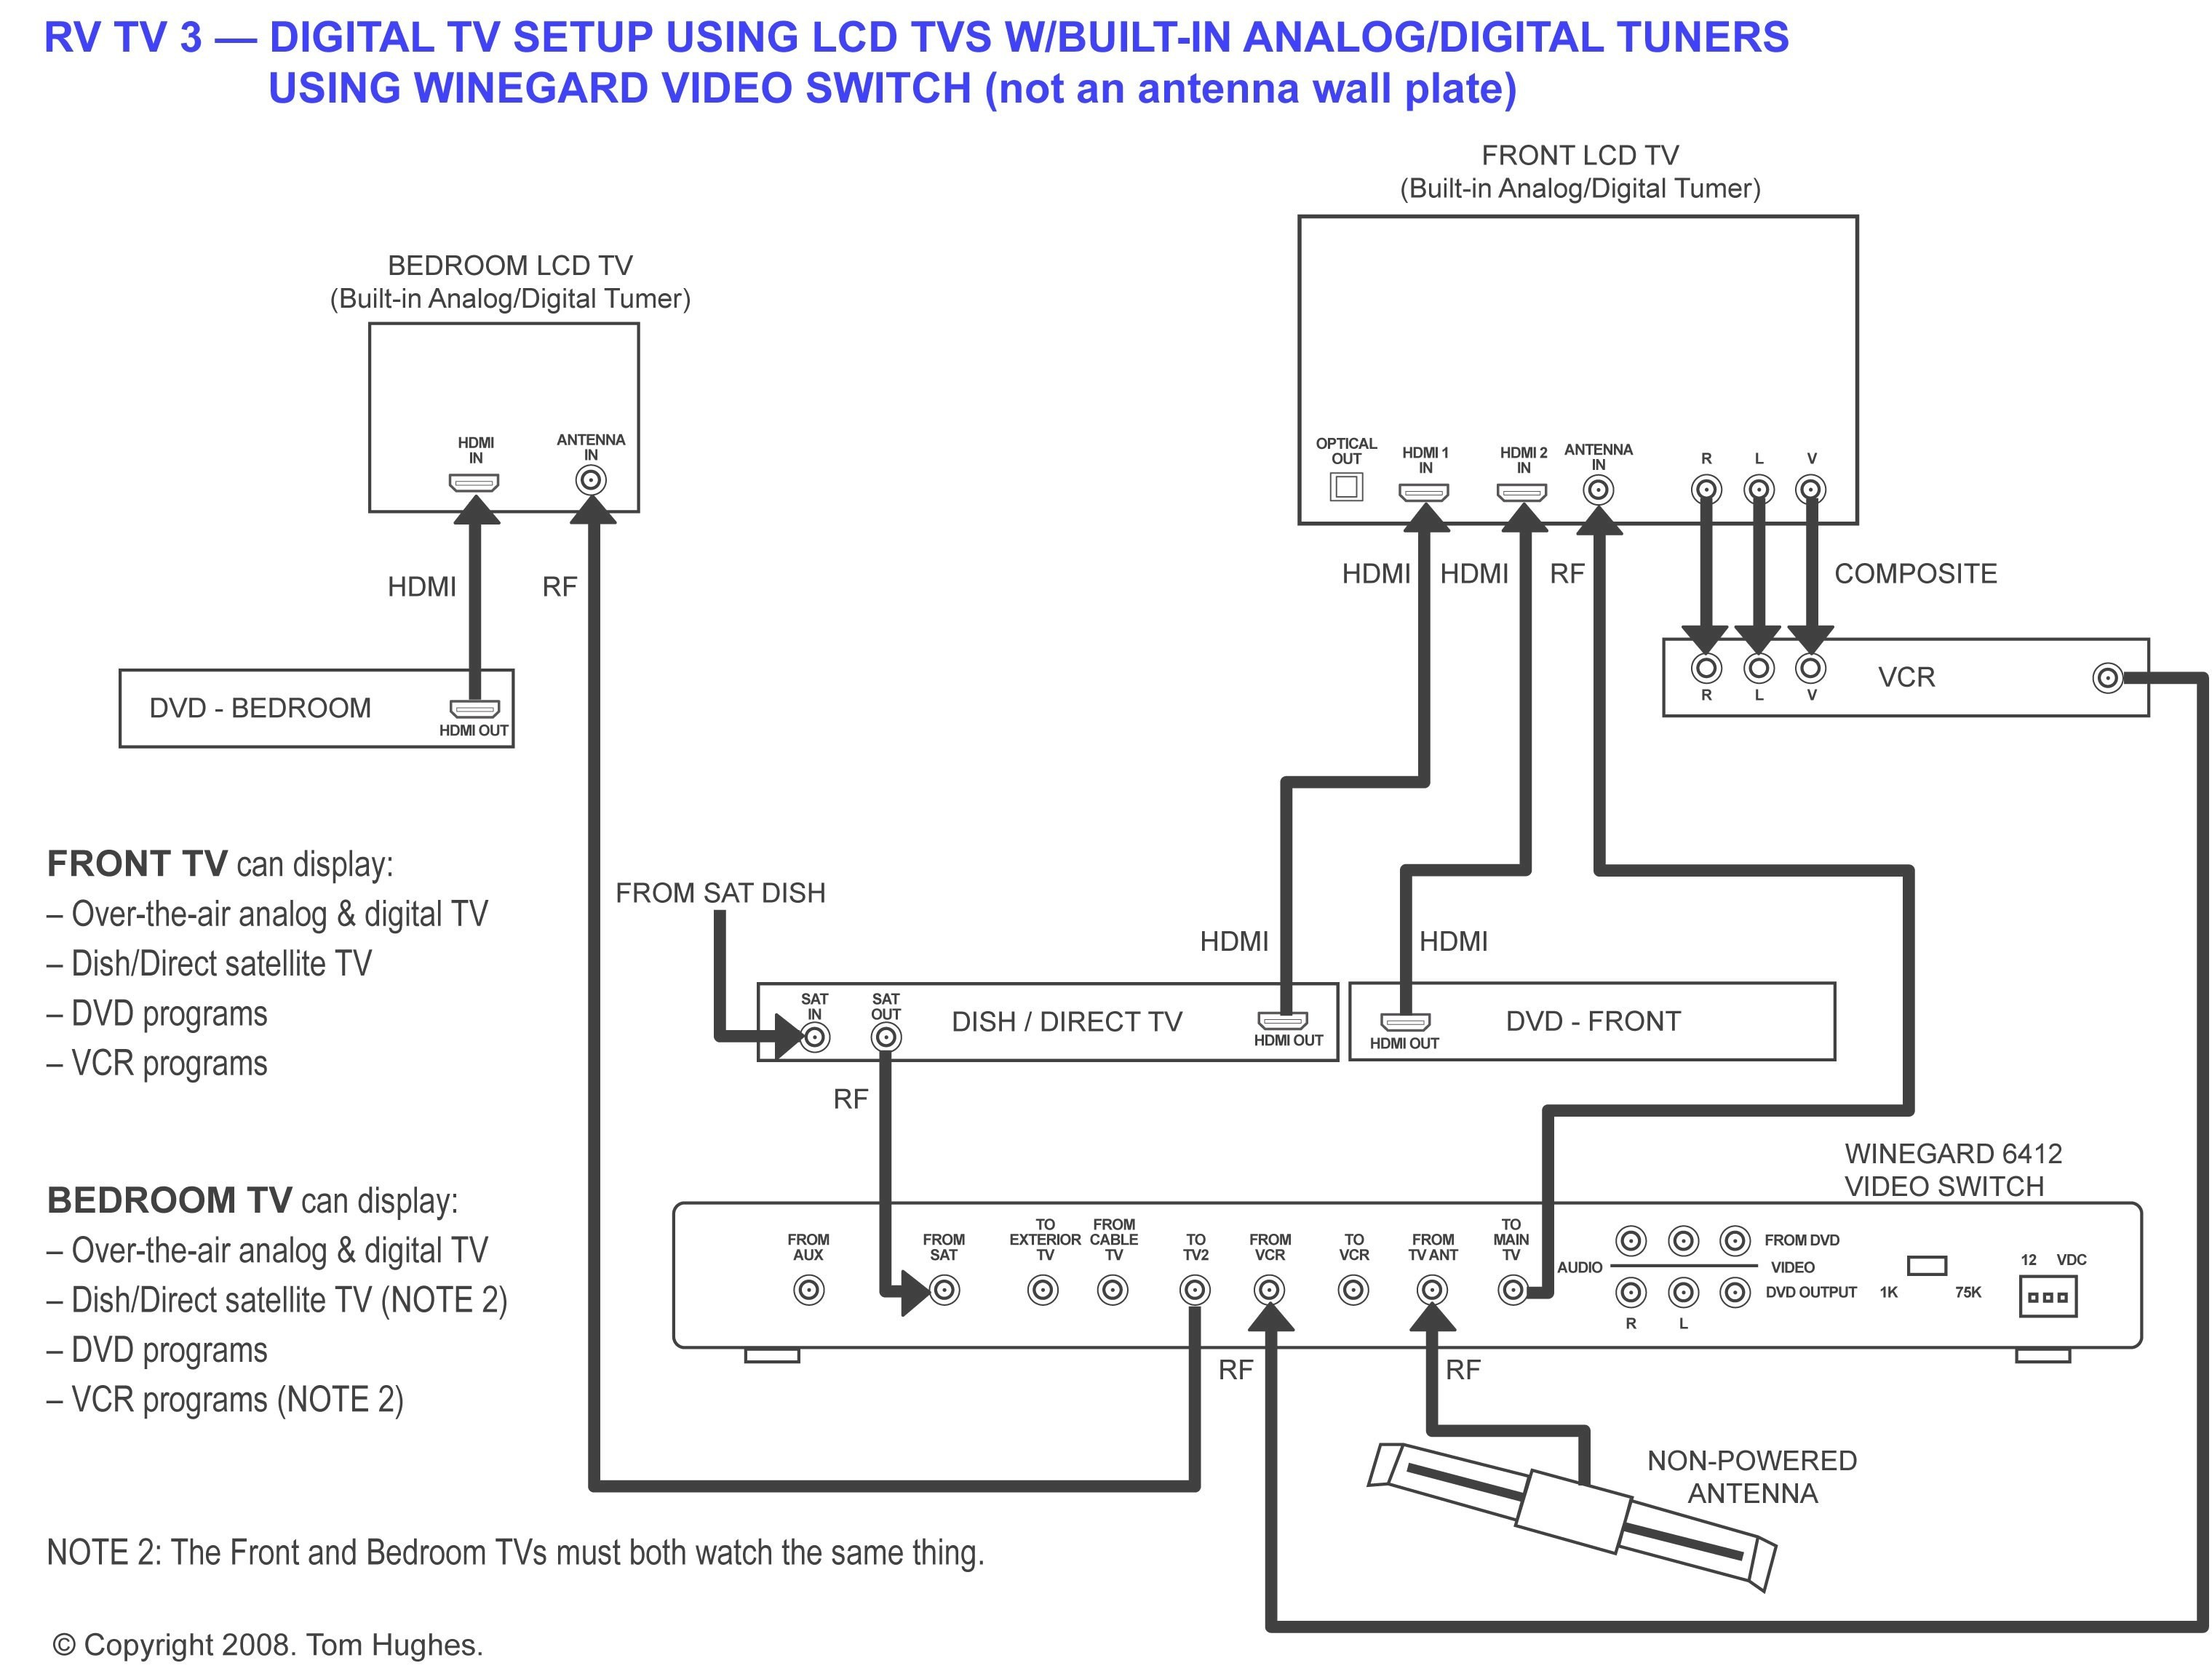 directv whole home wiring diagram 568137 likewise dph hopper 3 rv wiring ex les 150dpi together with hybrid lnb install 08 besides  as well sk3005 to sk1000 00 travler directv versions further  together with  further  as well  further similiar dish  work 1000 wiring diagram keywords furthermore how to split a directv 2. on dish network satellite wiring diagram